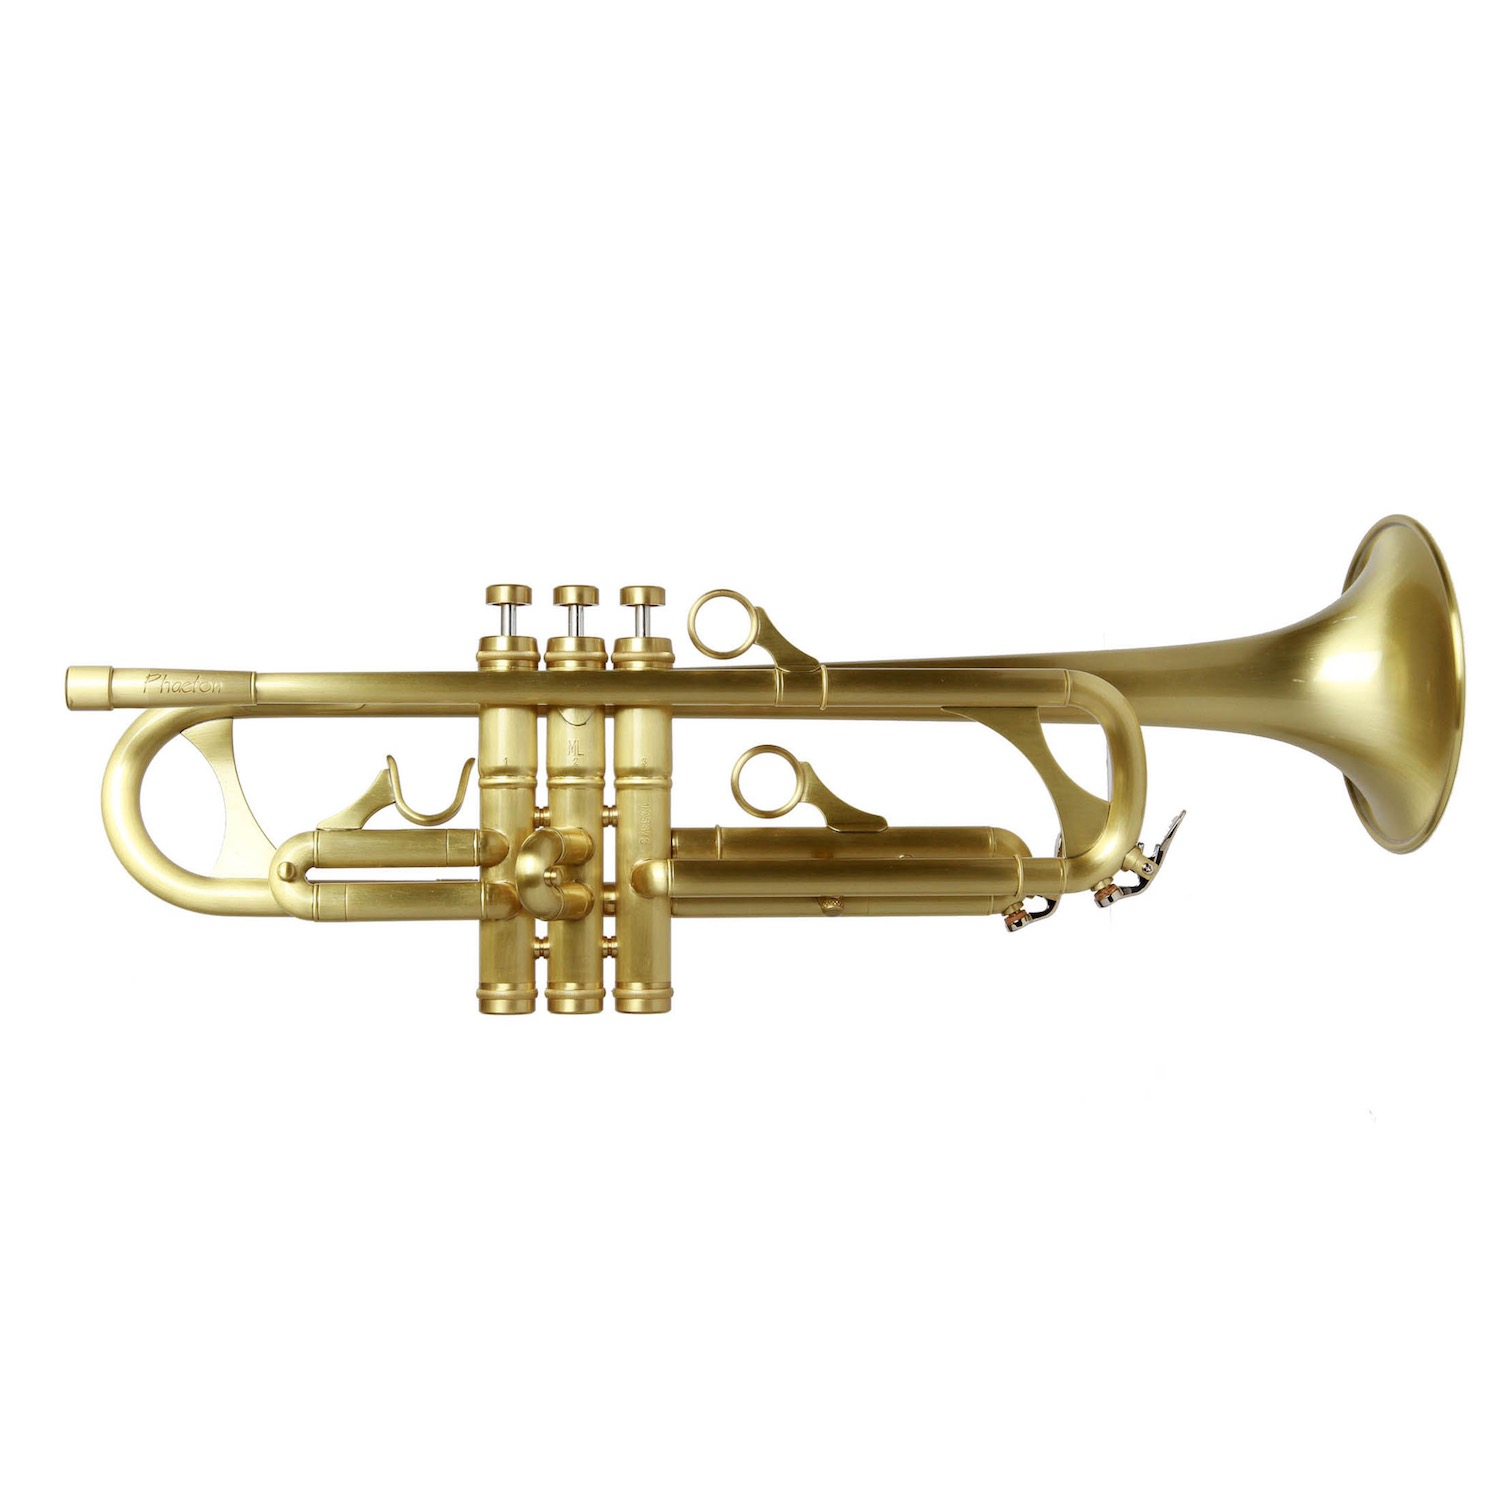 Phaeton Custom Trumpet - Antique Brushed Brass Finish